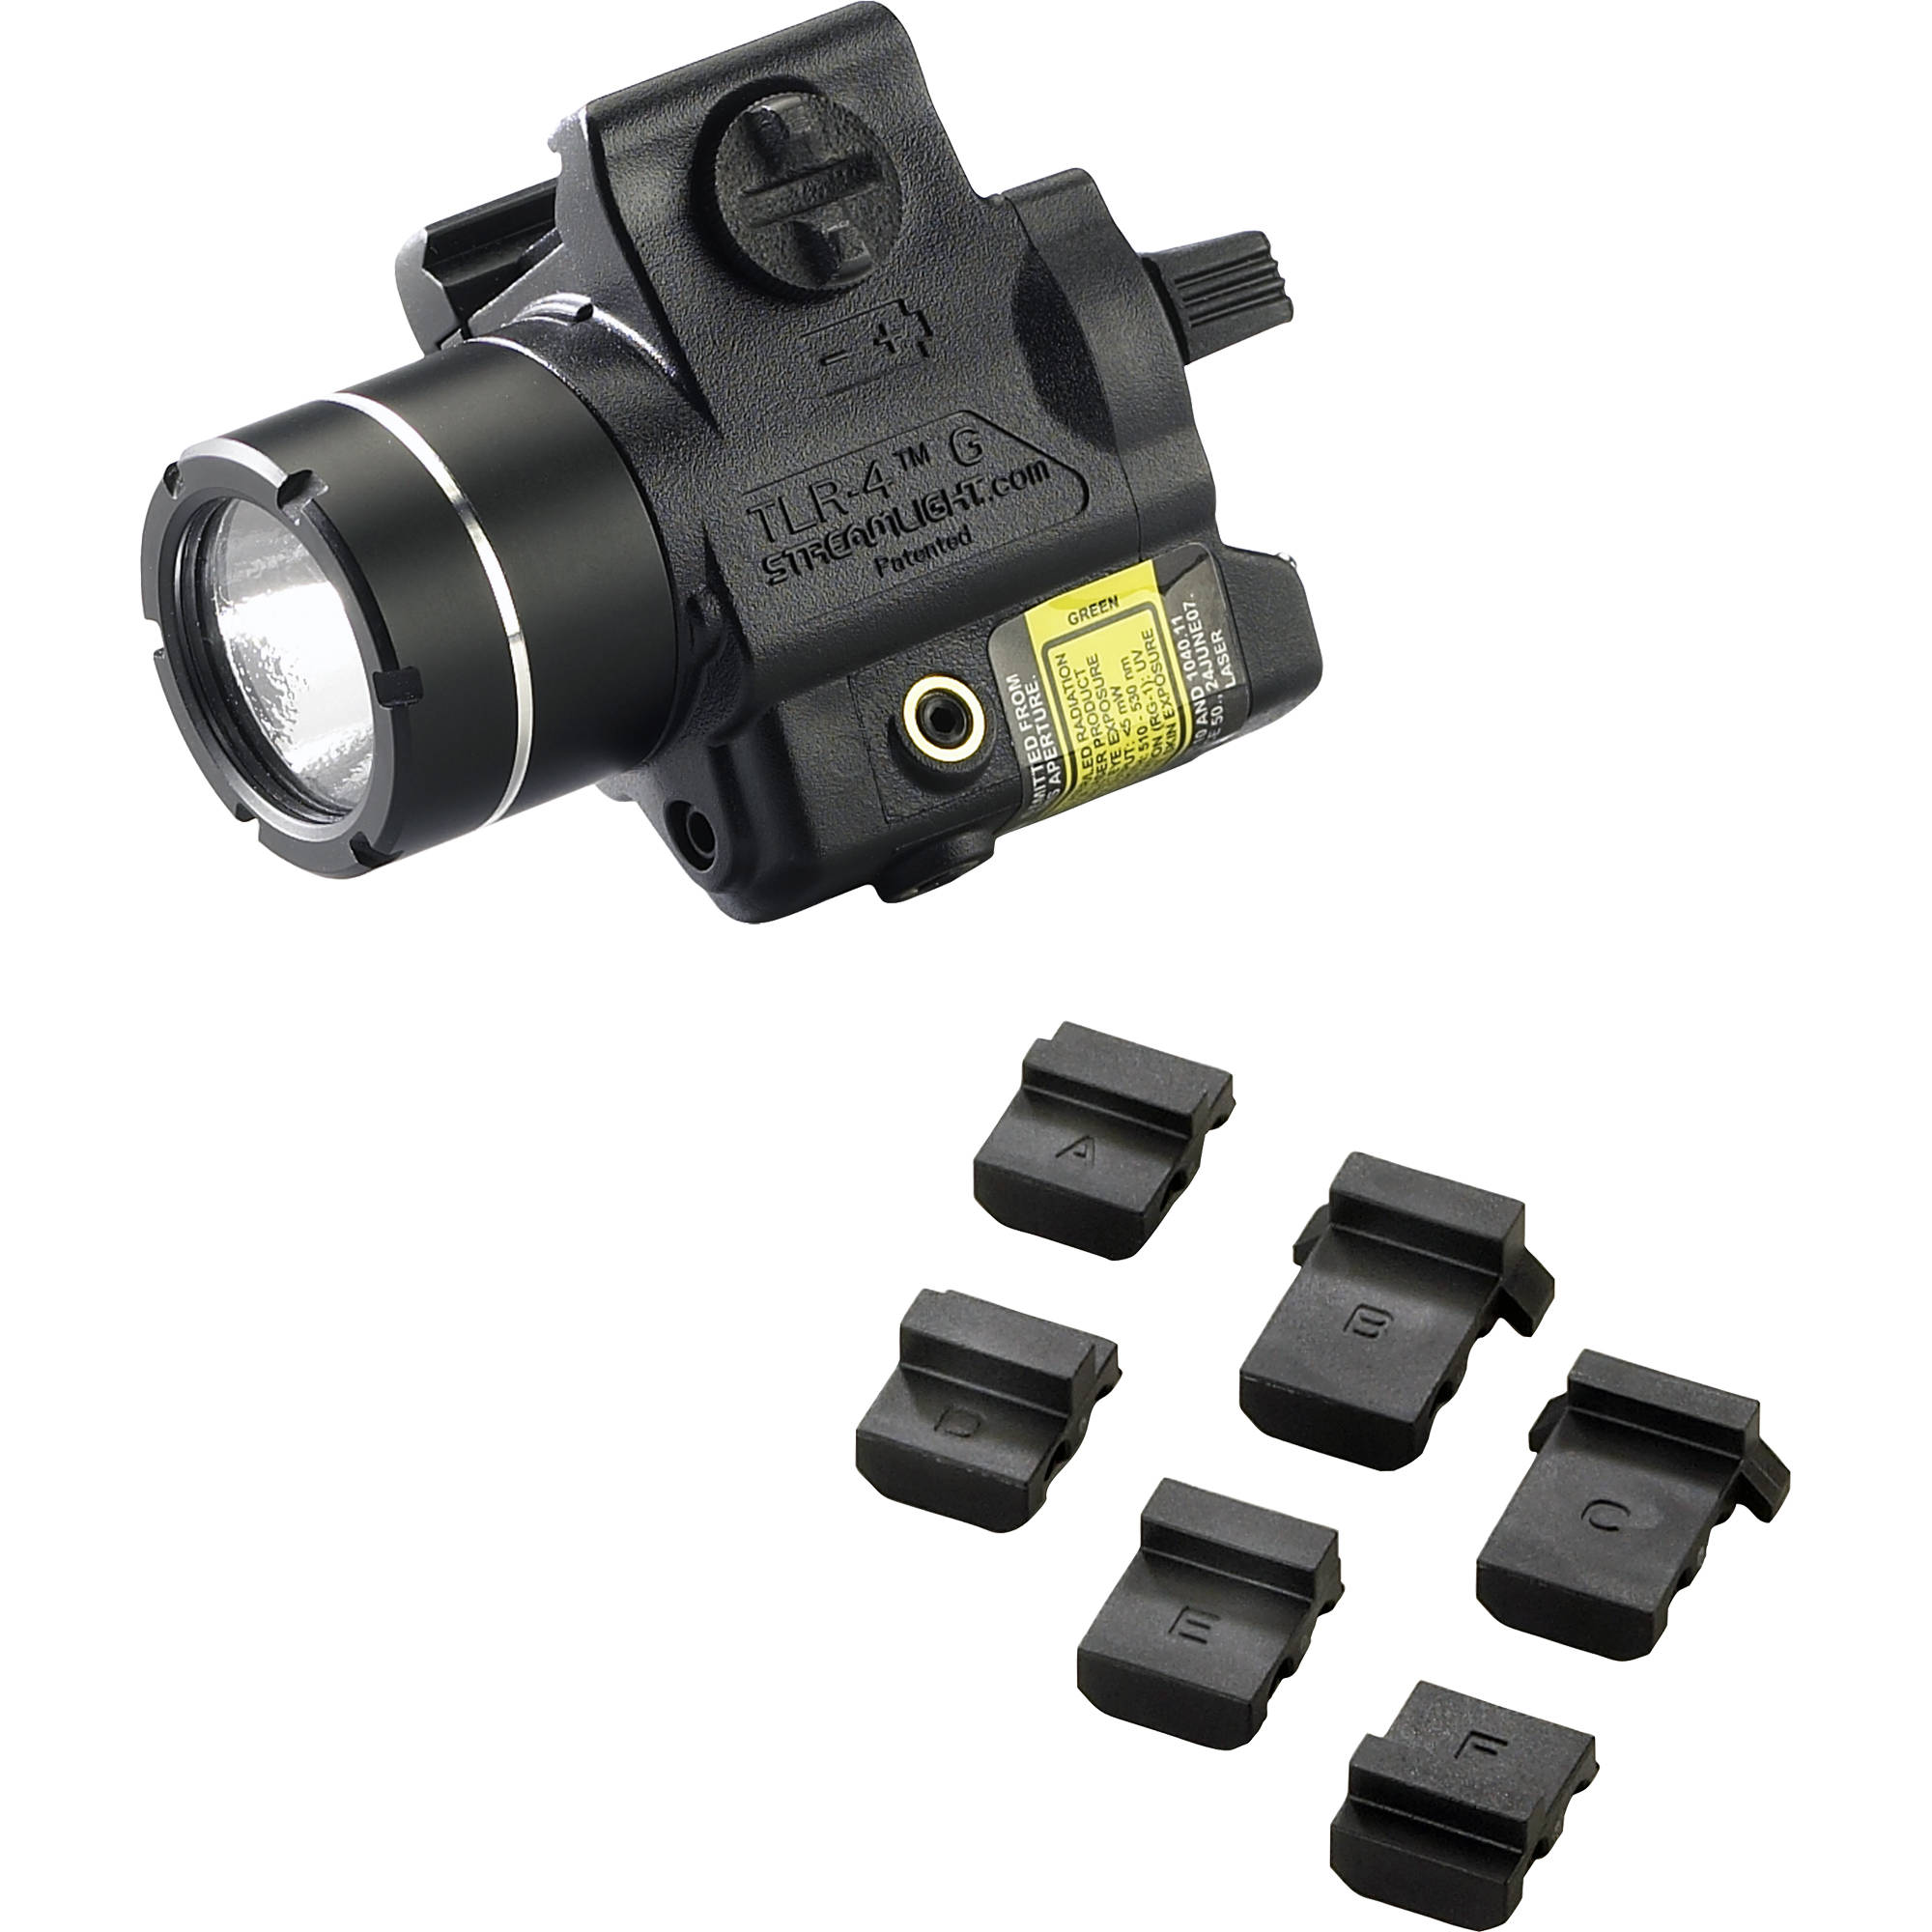 Streamlight Tlr 4 G Compact Rail Mounted Tactical Light 69245